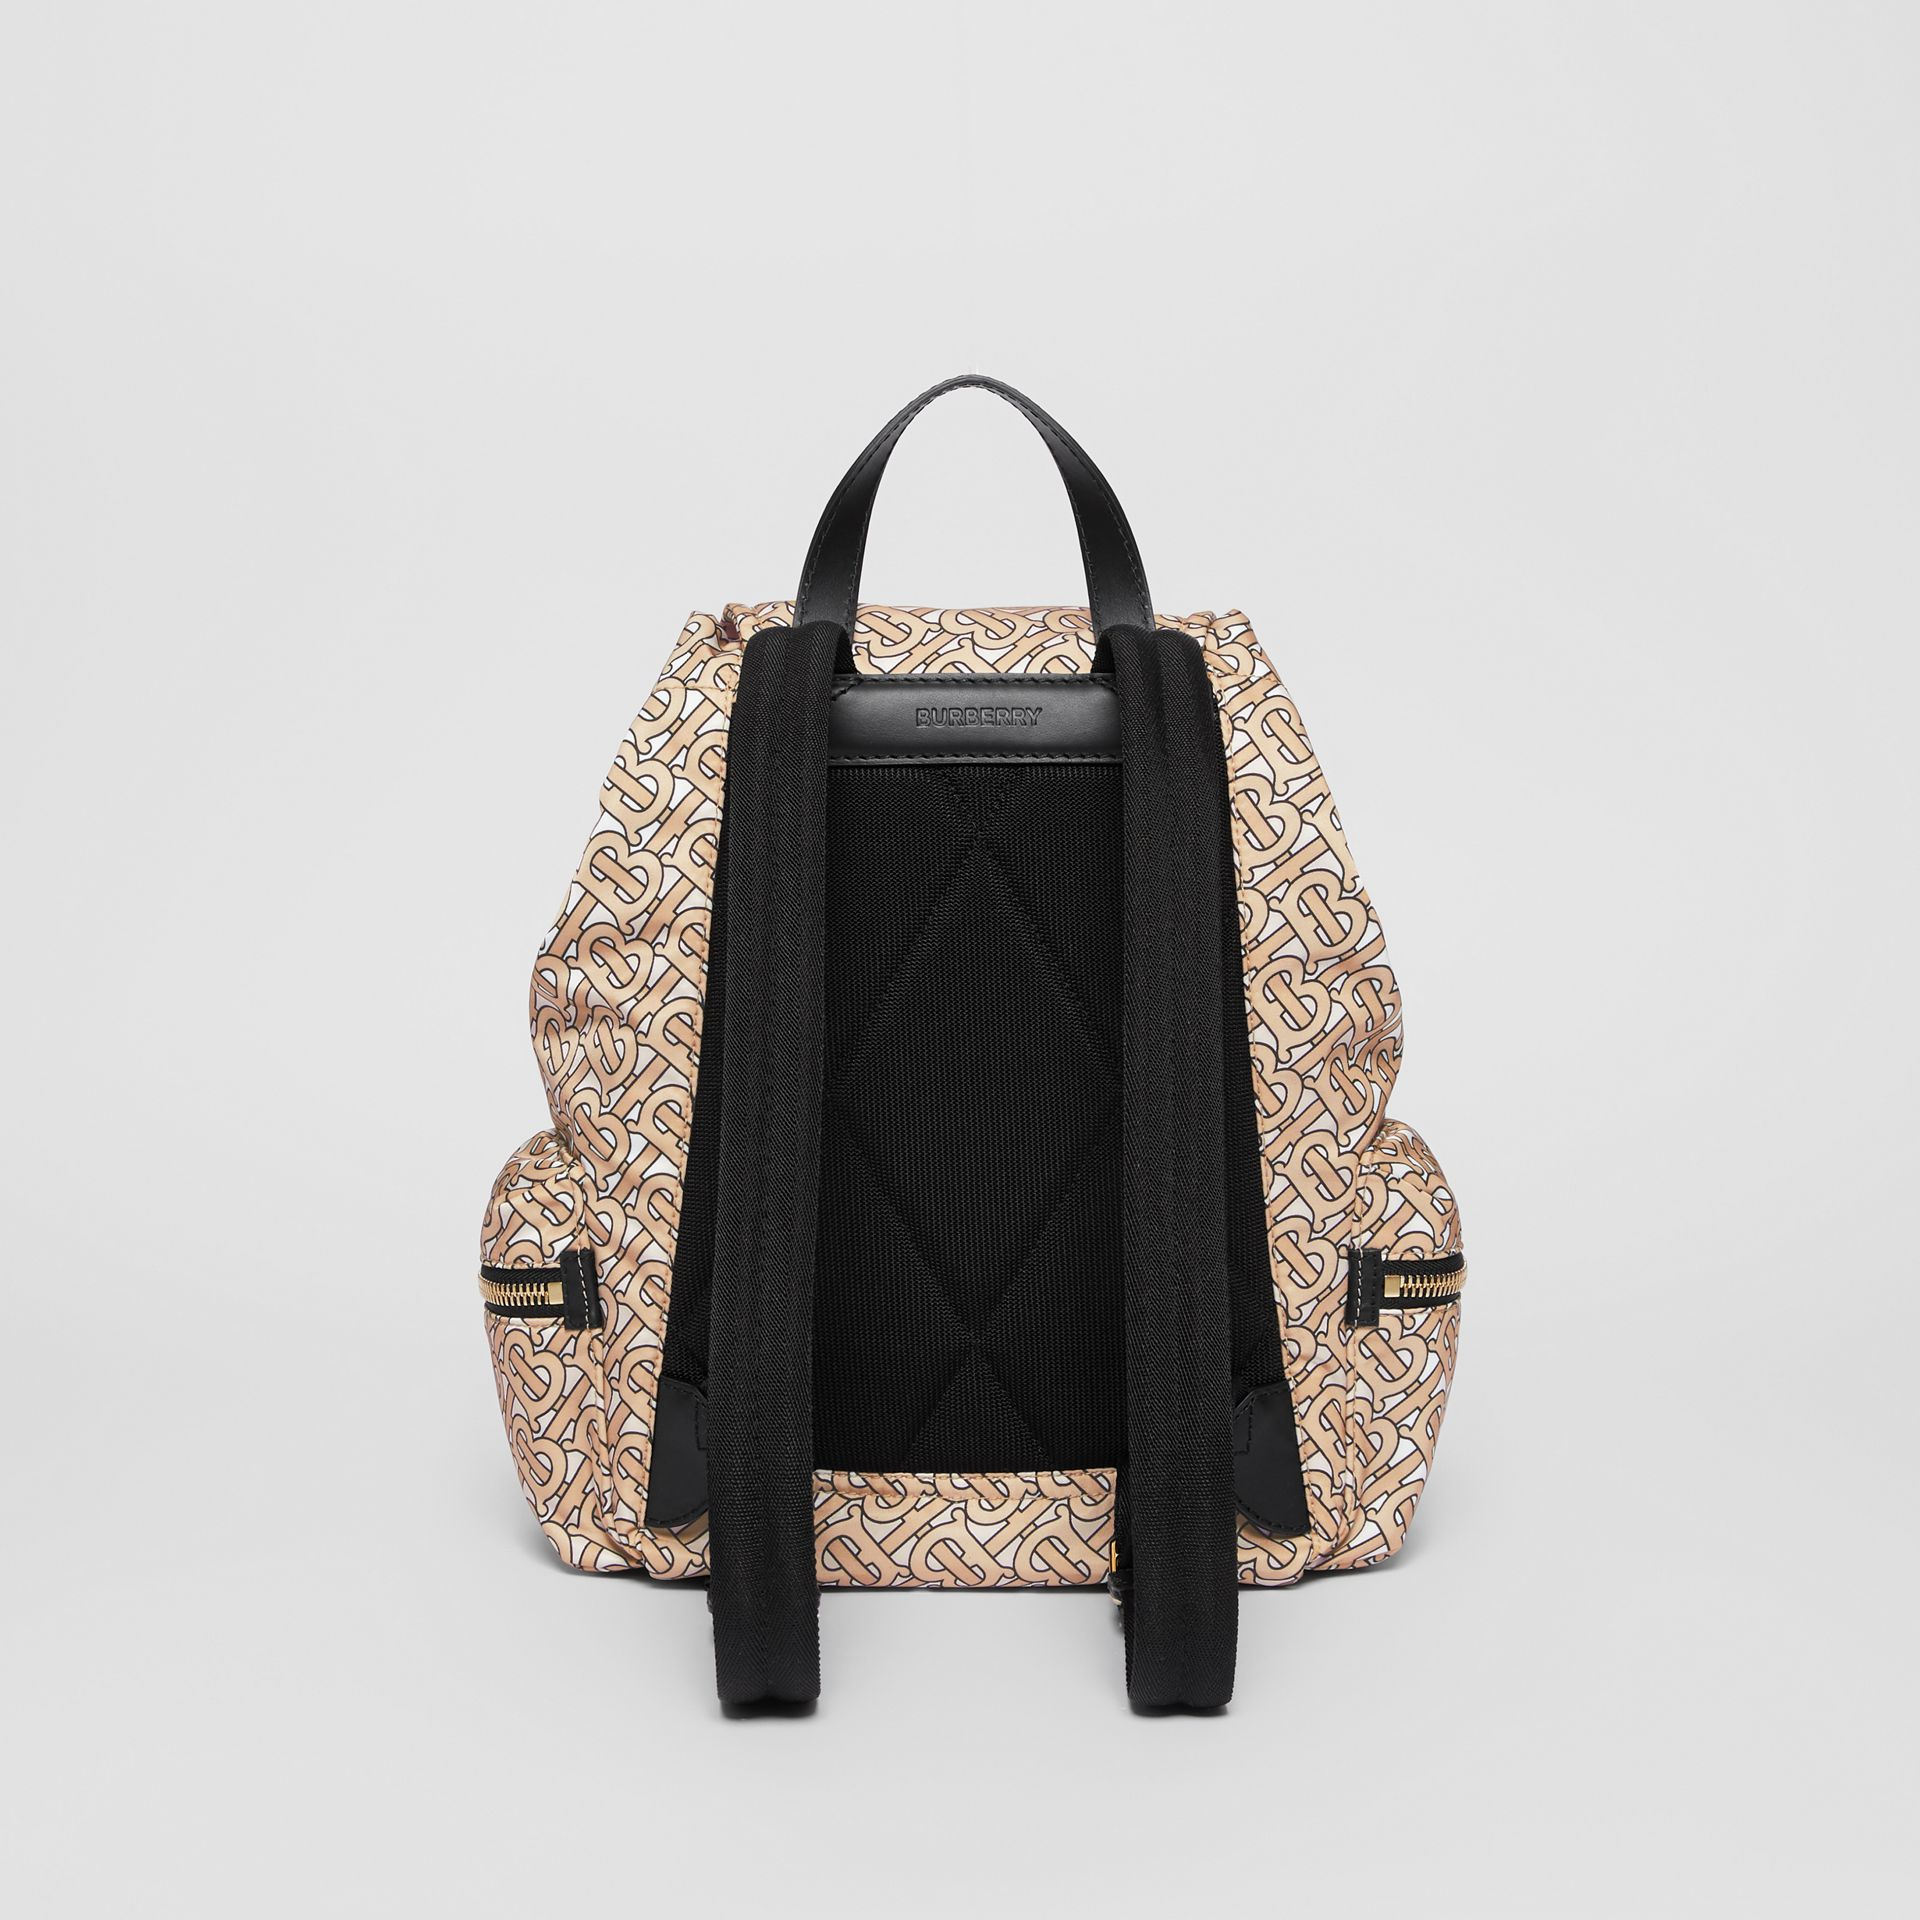 Sac The Rucksack moyen en nylon Monogram (Beige) - Femme | Burberry - photo de la galerie 7